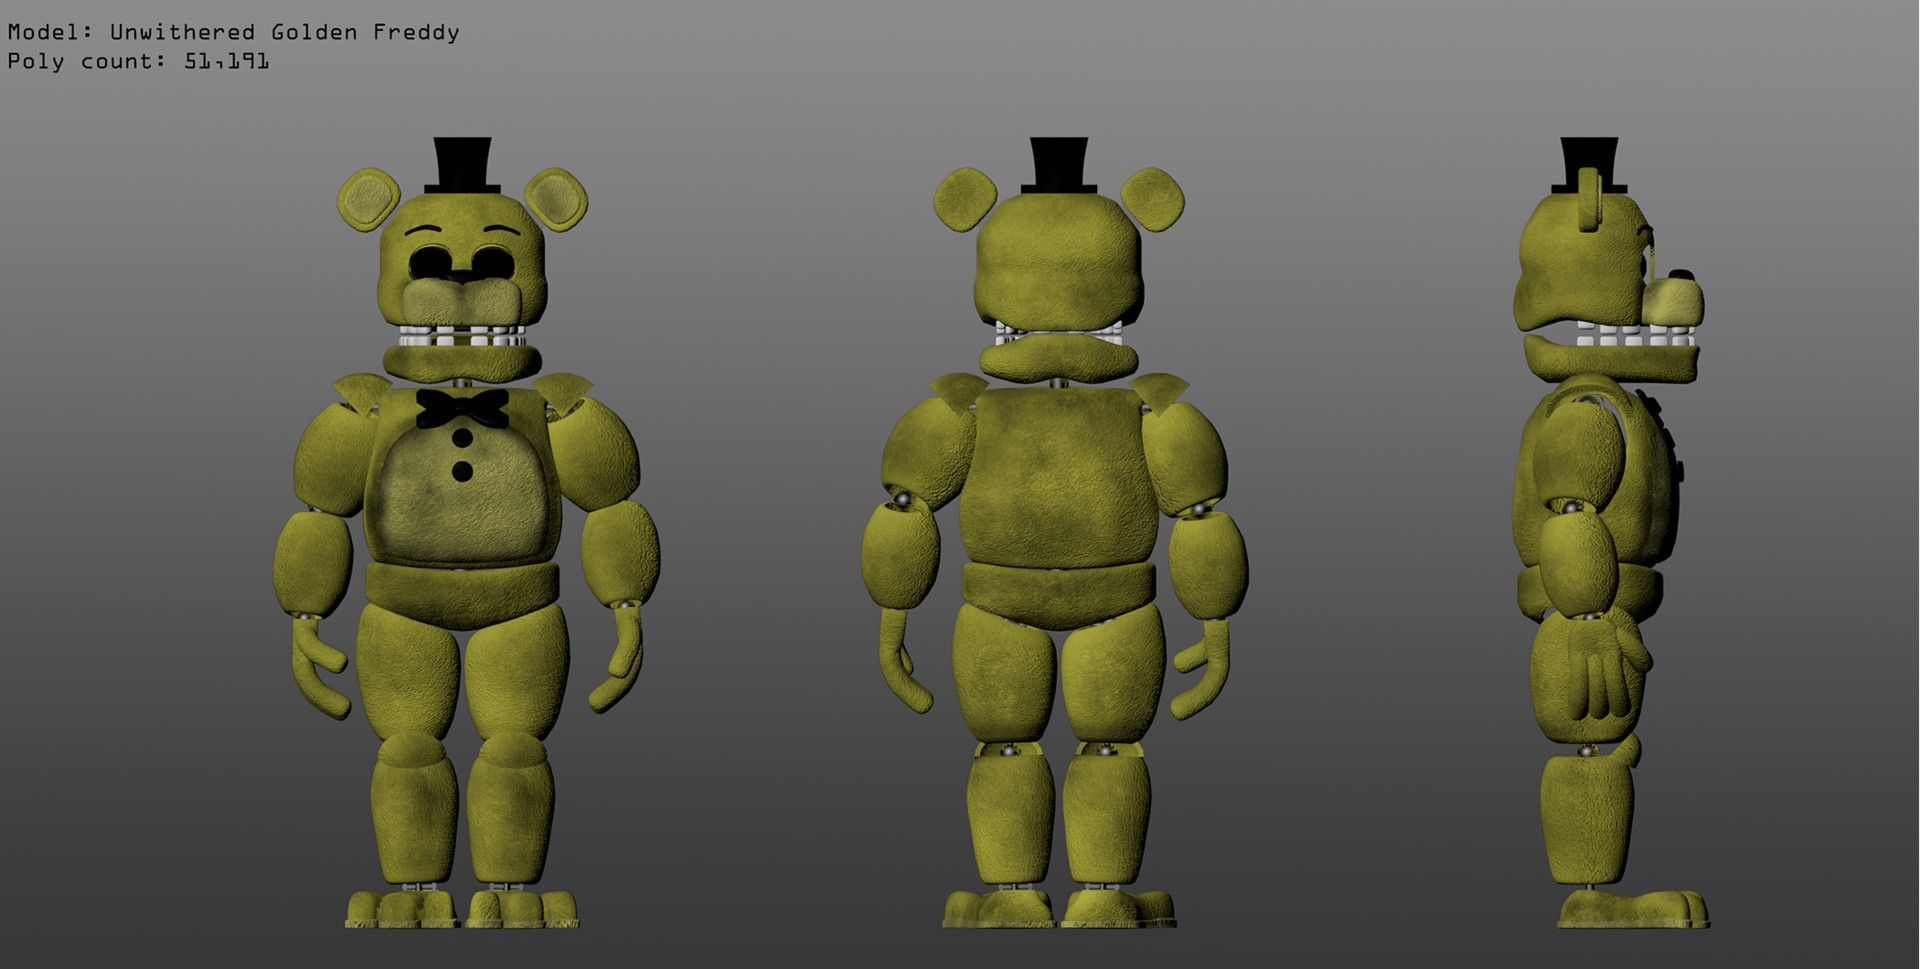 Thomas Honeybell - Five Nights at Freddy's 2 Fan-made Withered 3D Models